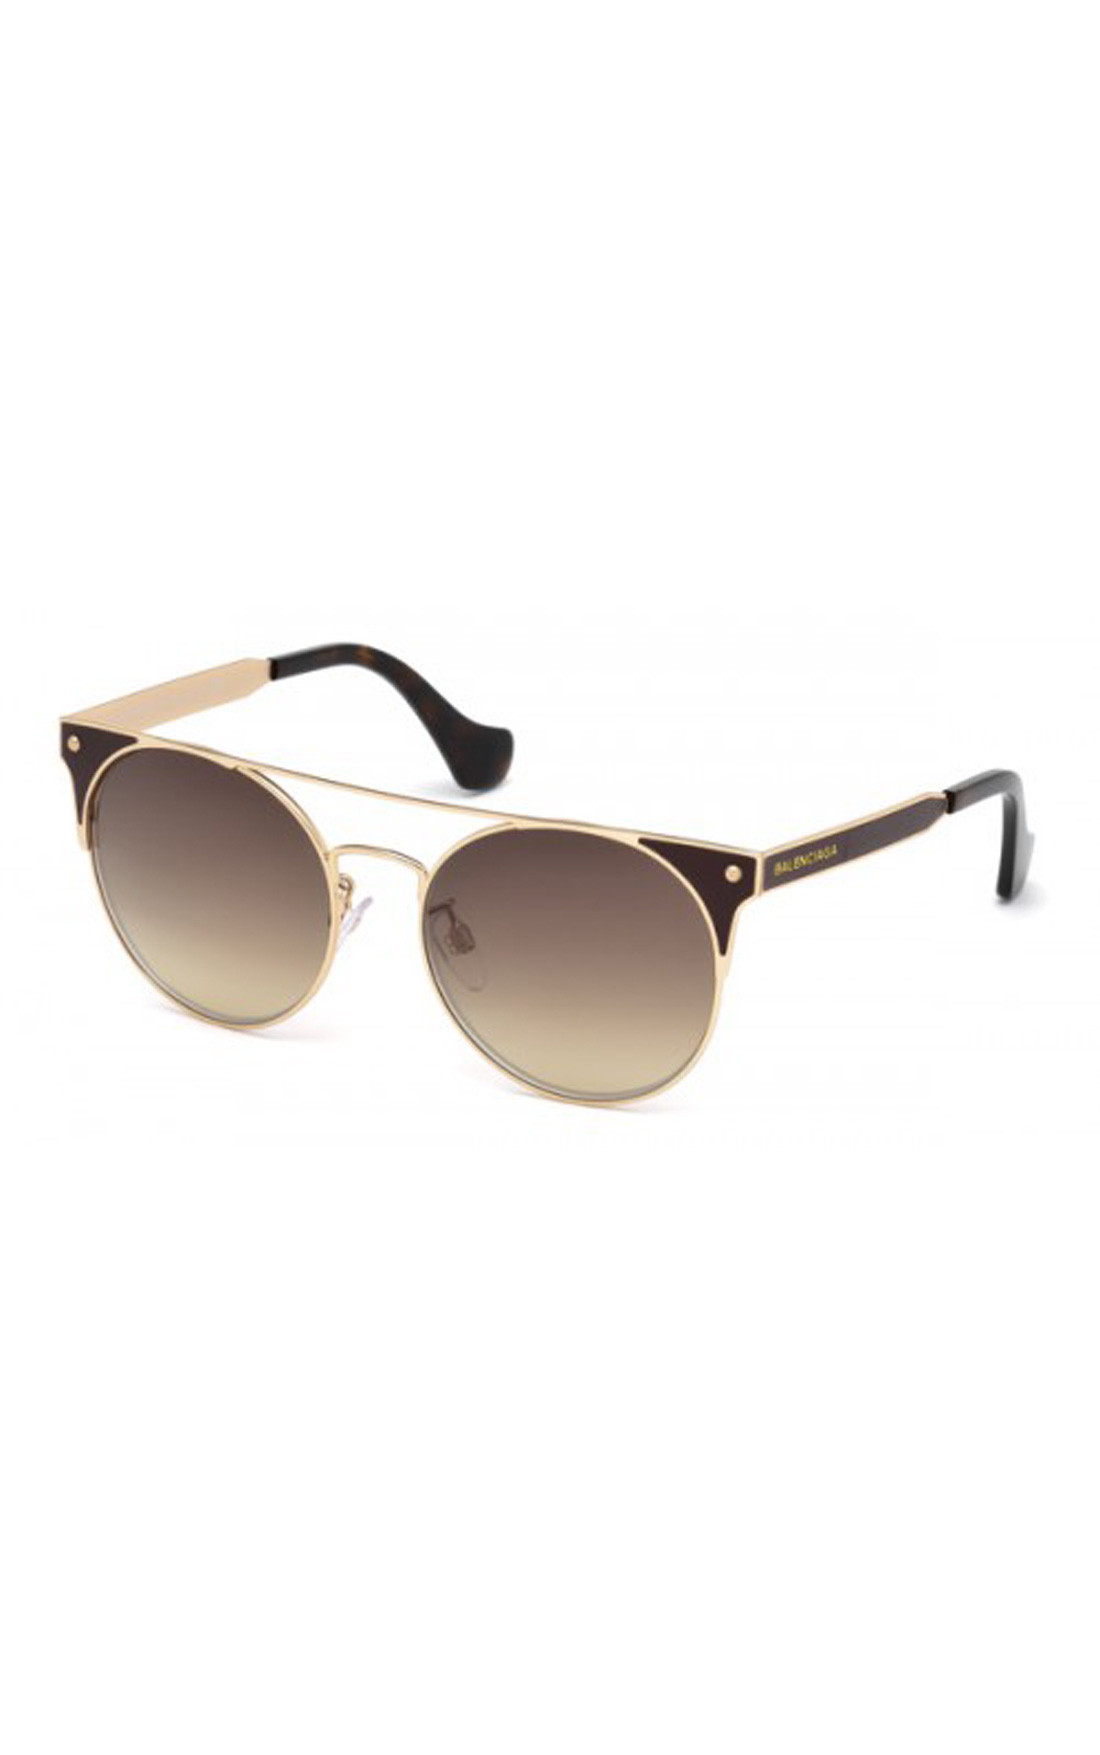 Balenciaga - Gold Brown Geometric Sunglasses (BA00715471F)